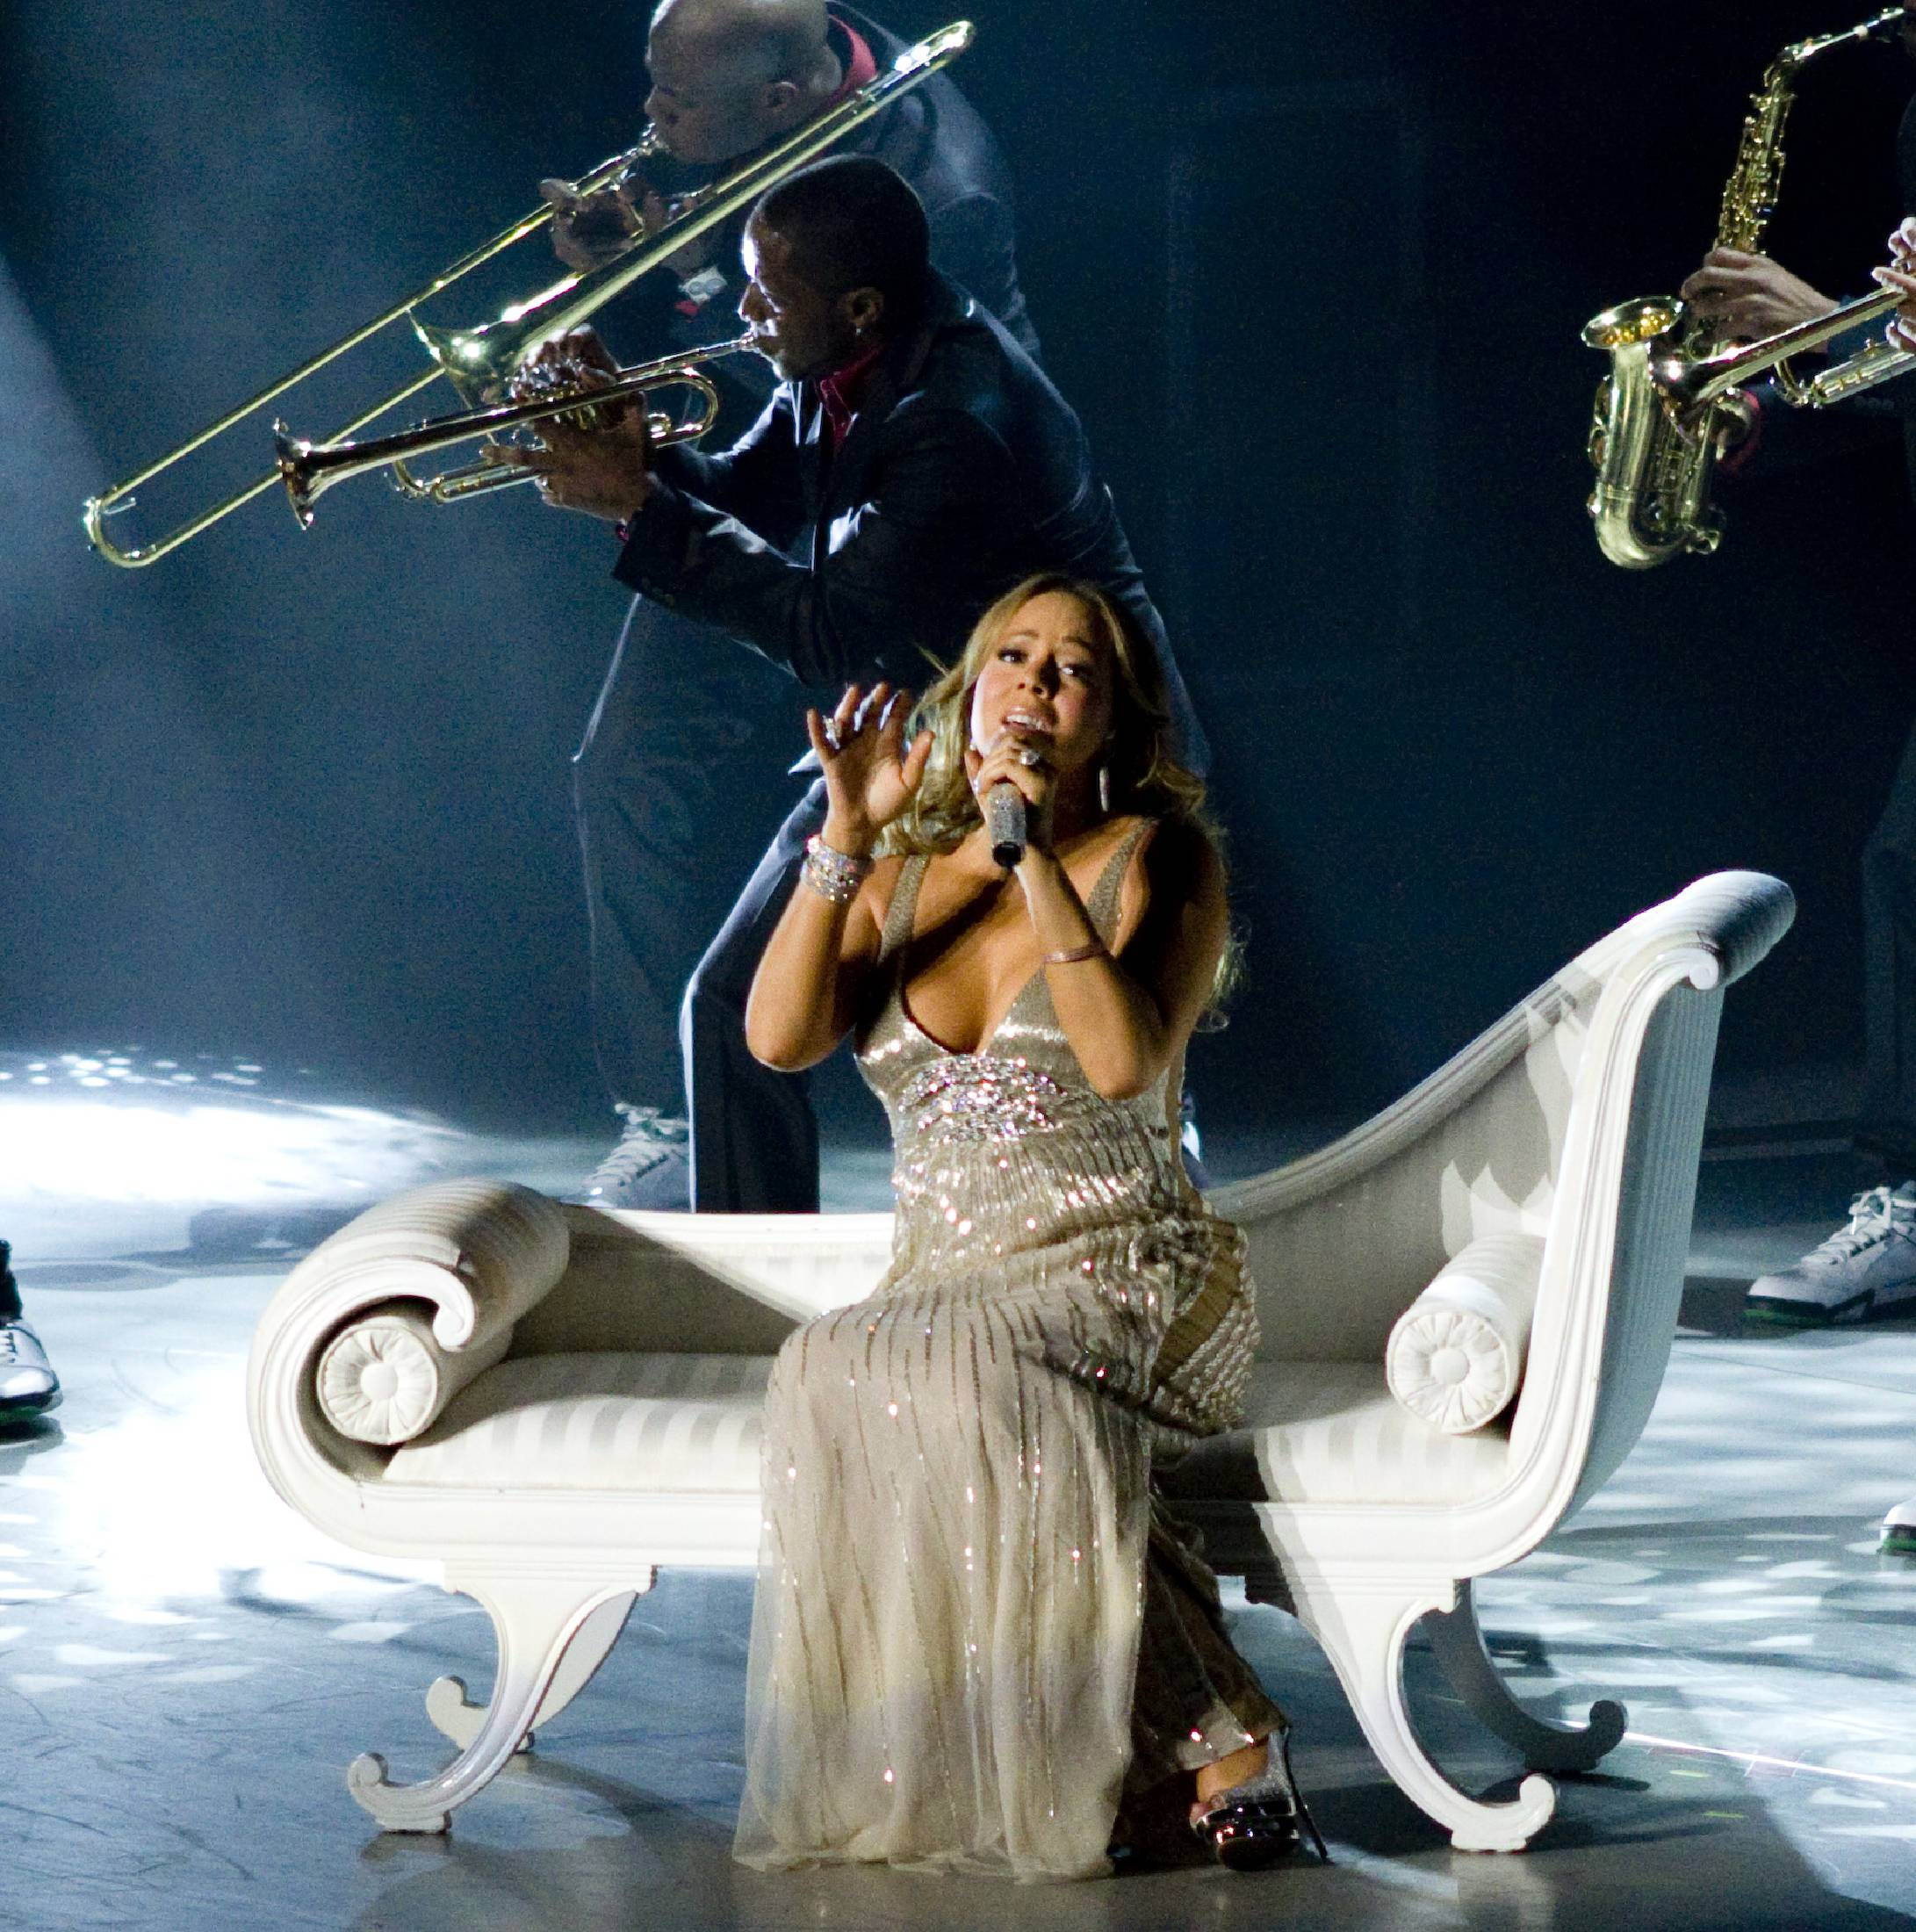 53768_Mariah_Carey_performs_at_Madison_Square_Garden_in_New_York_City-9_122_116lo.jpg